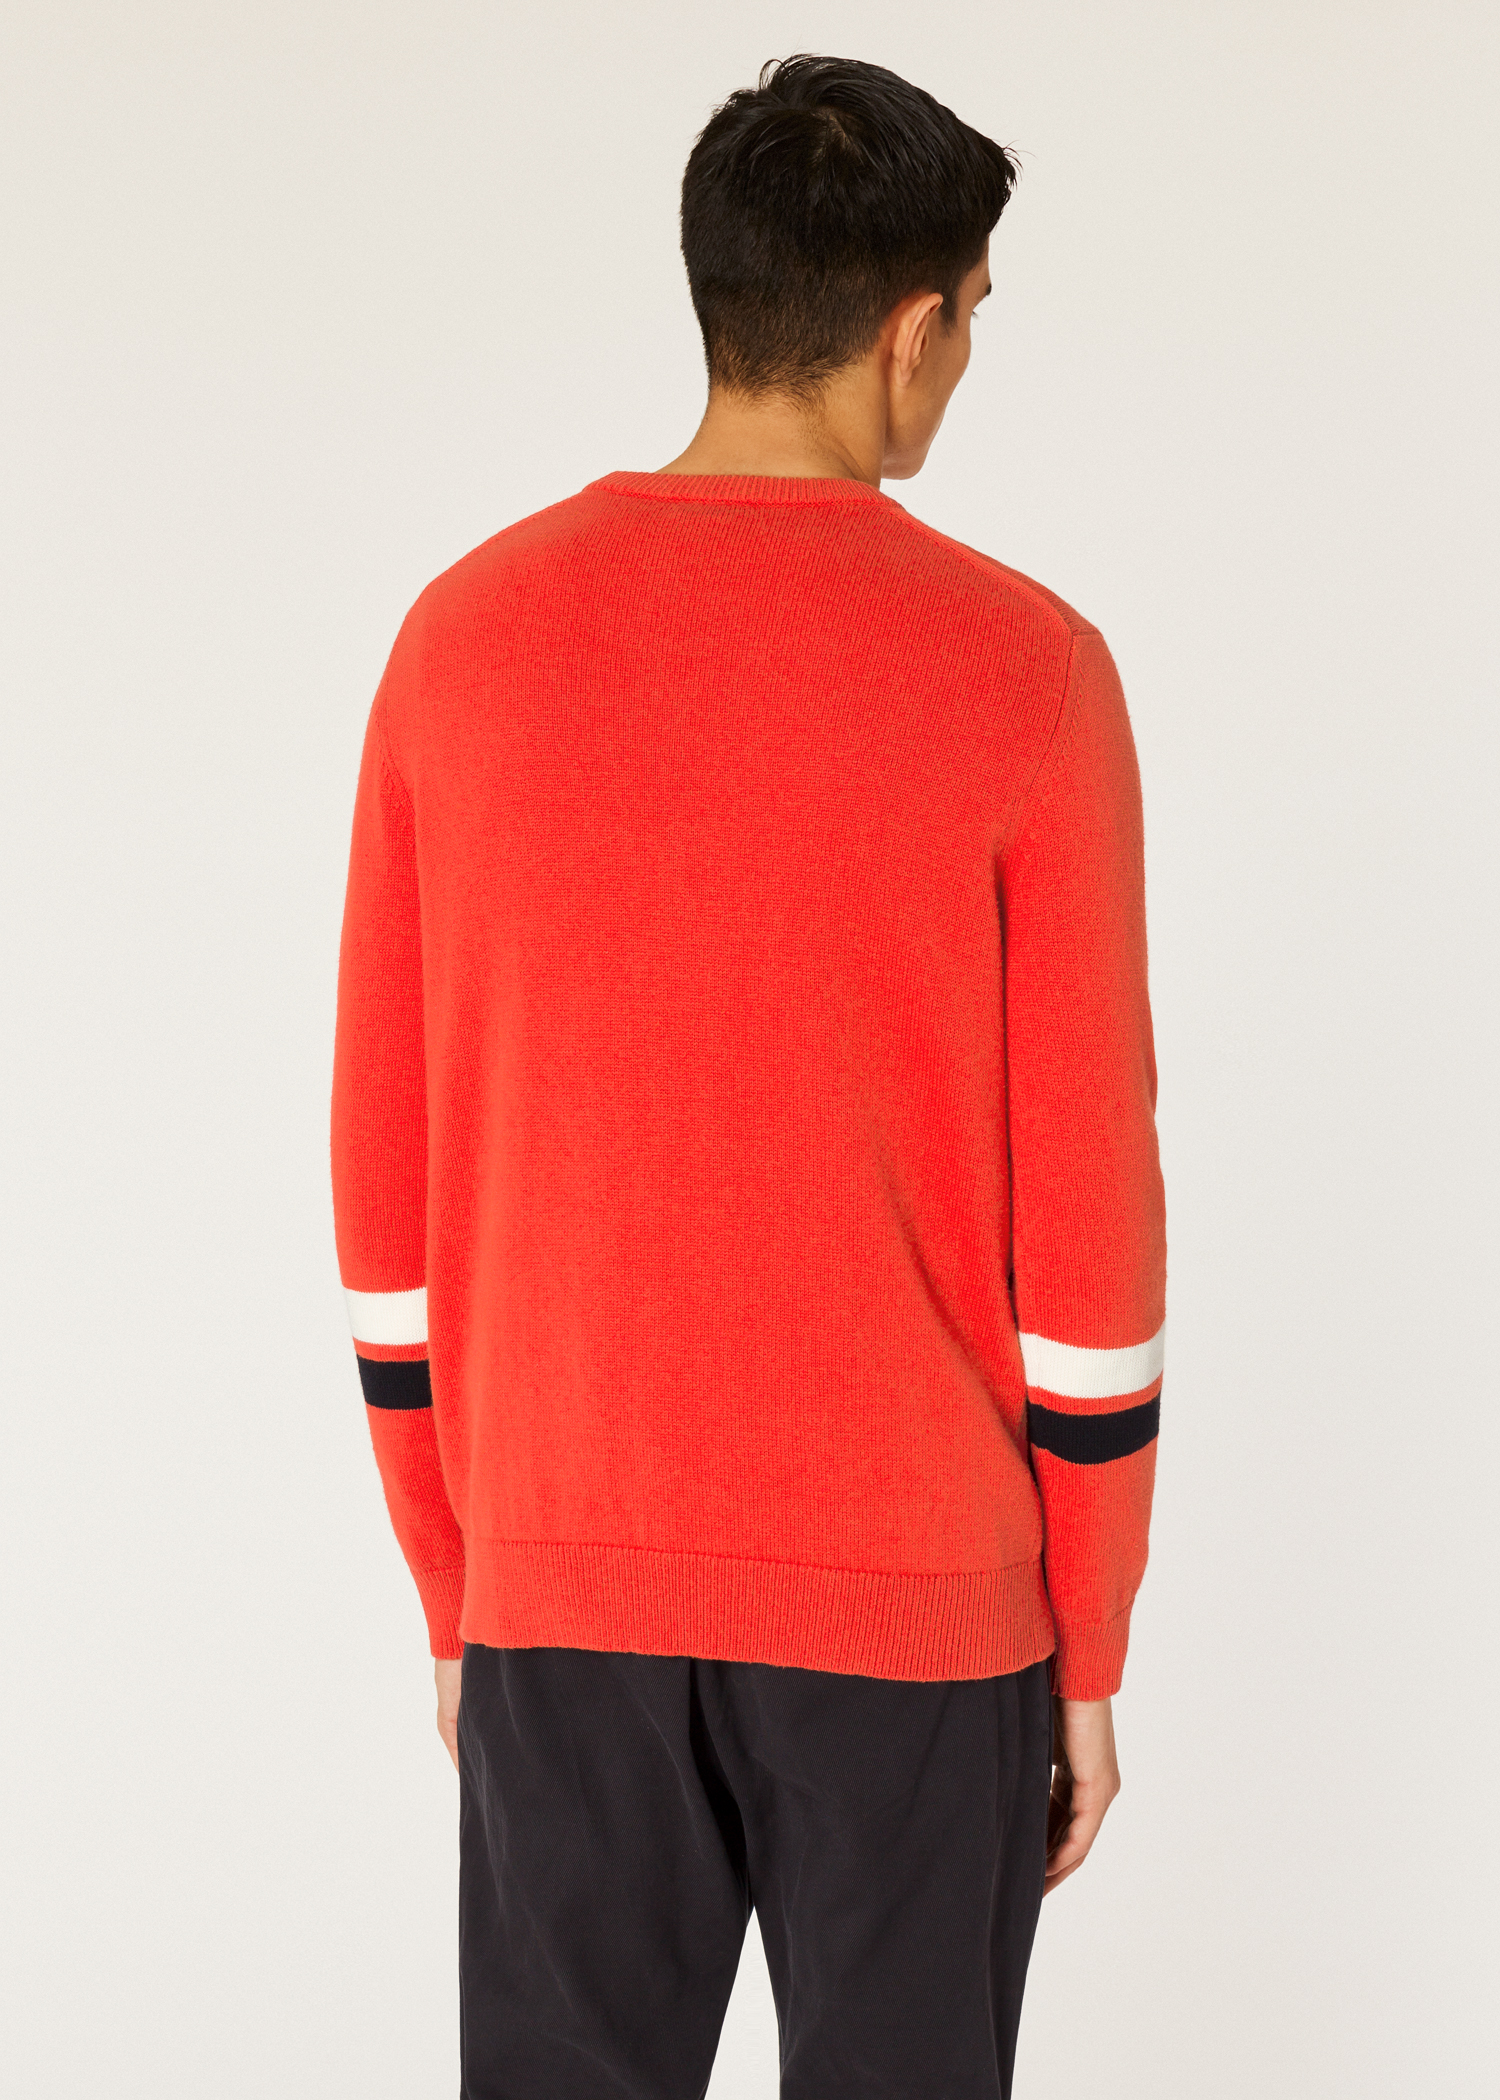 7f3d24e77 Men s Red Cotton and Wool-Blend  Urban Fox  Intarsia Sweater - Paul ...